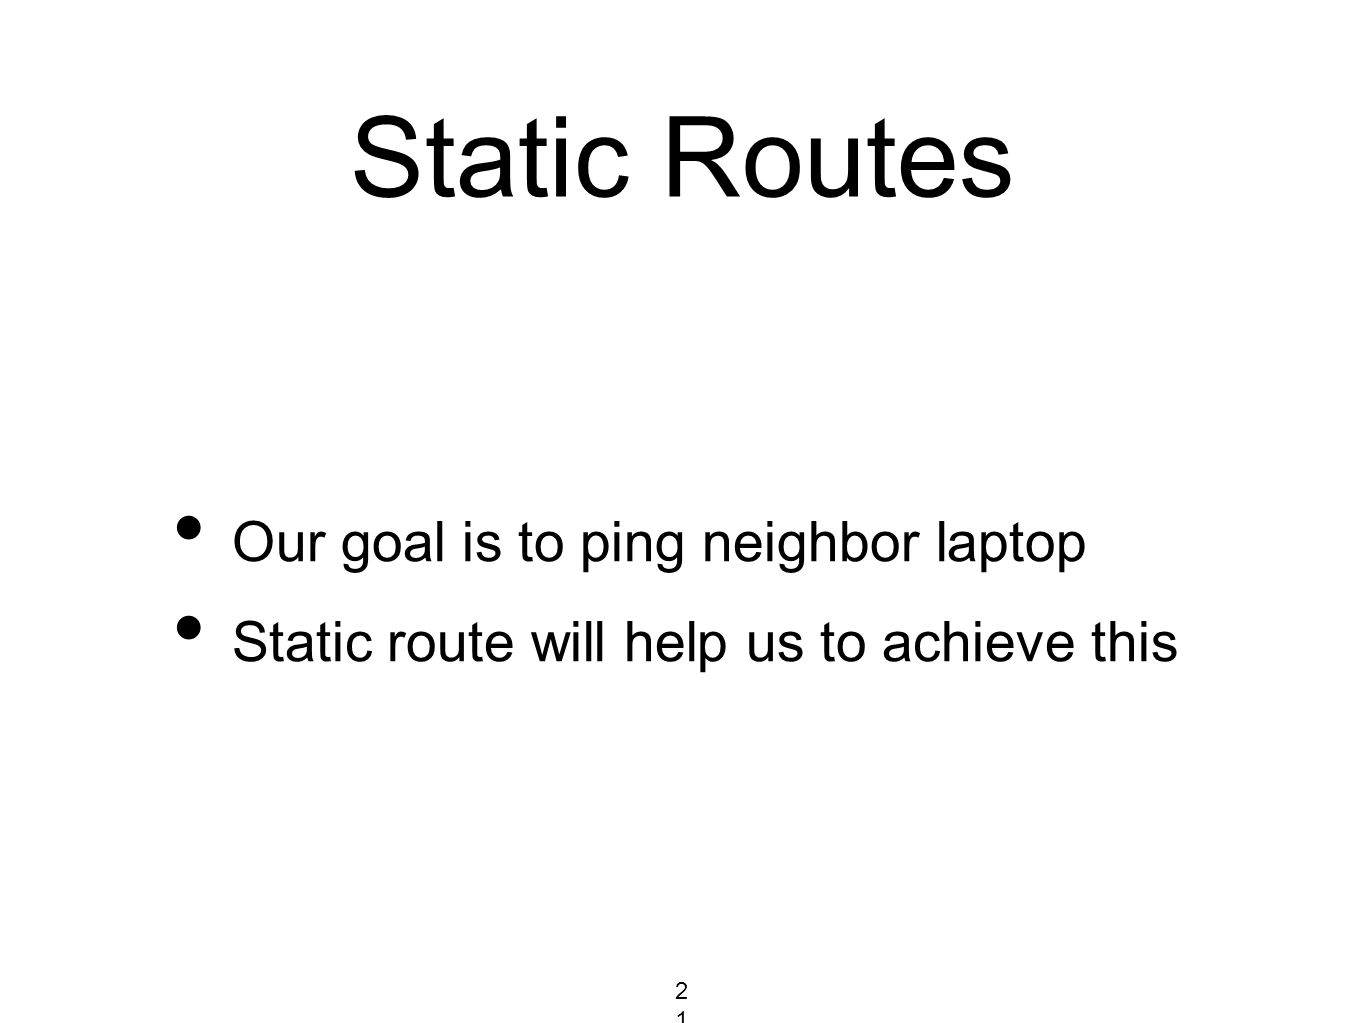 Static Routes Our goal is to ping neighbor laptop Static route will help us to achieve this 216216216